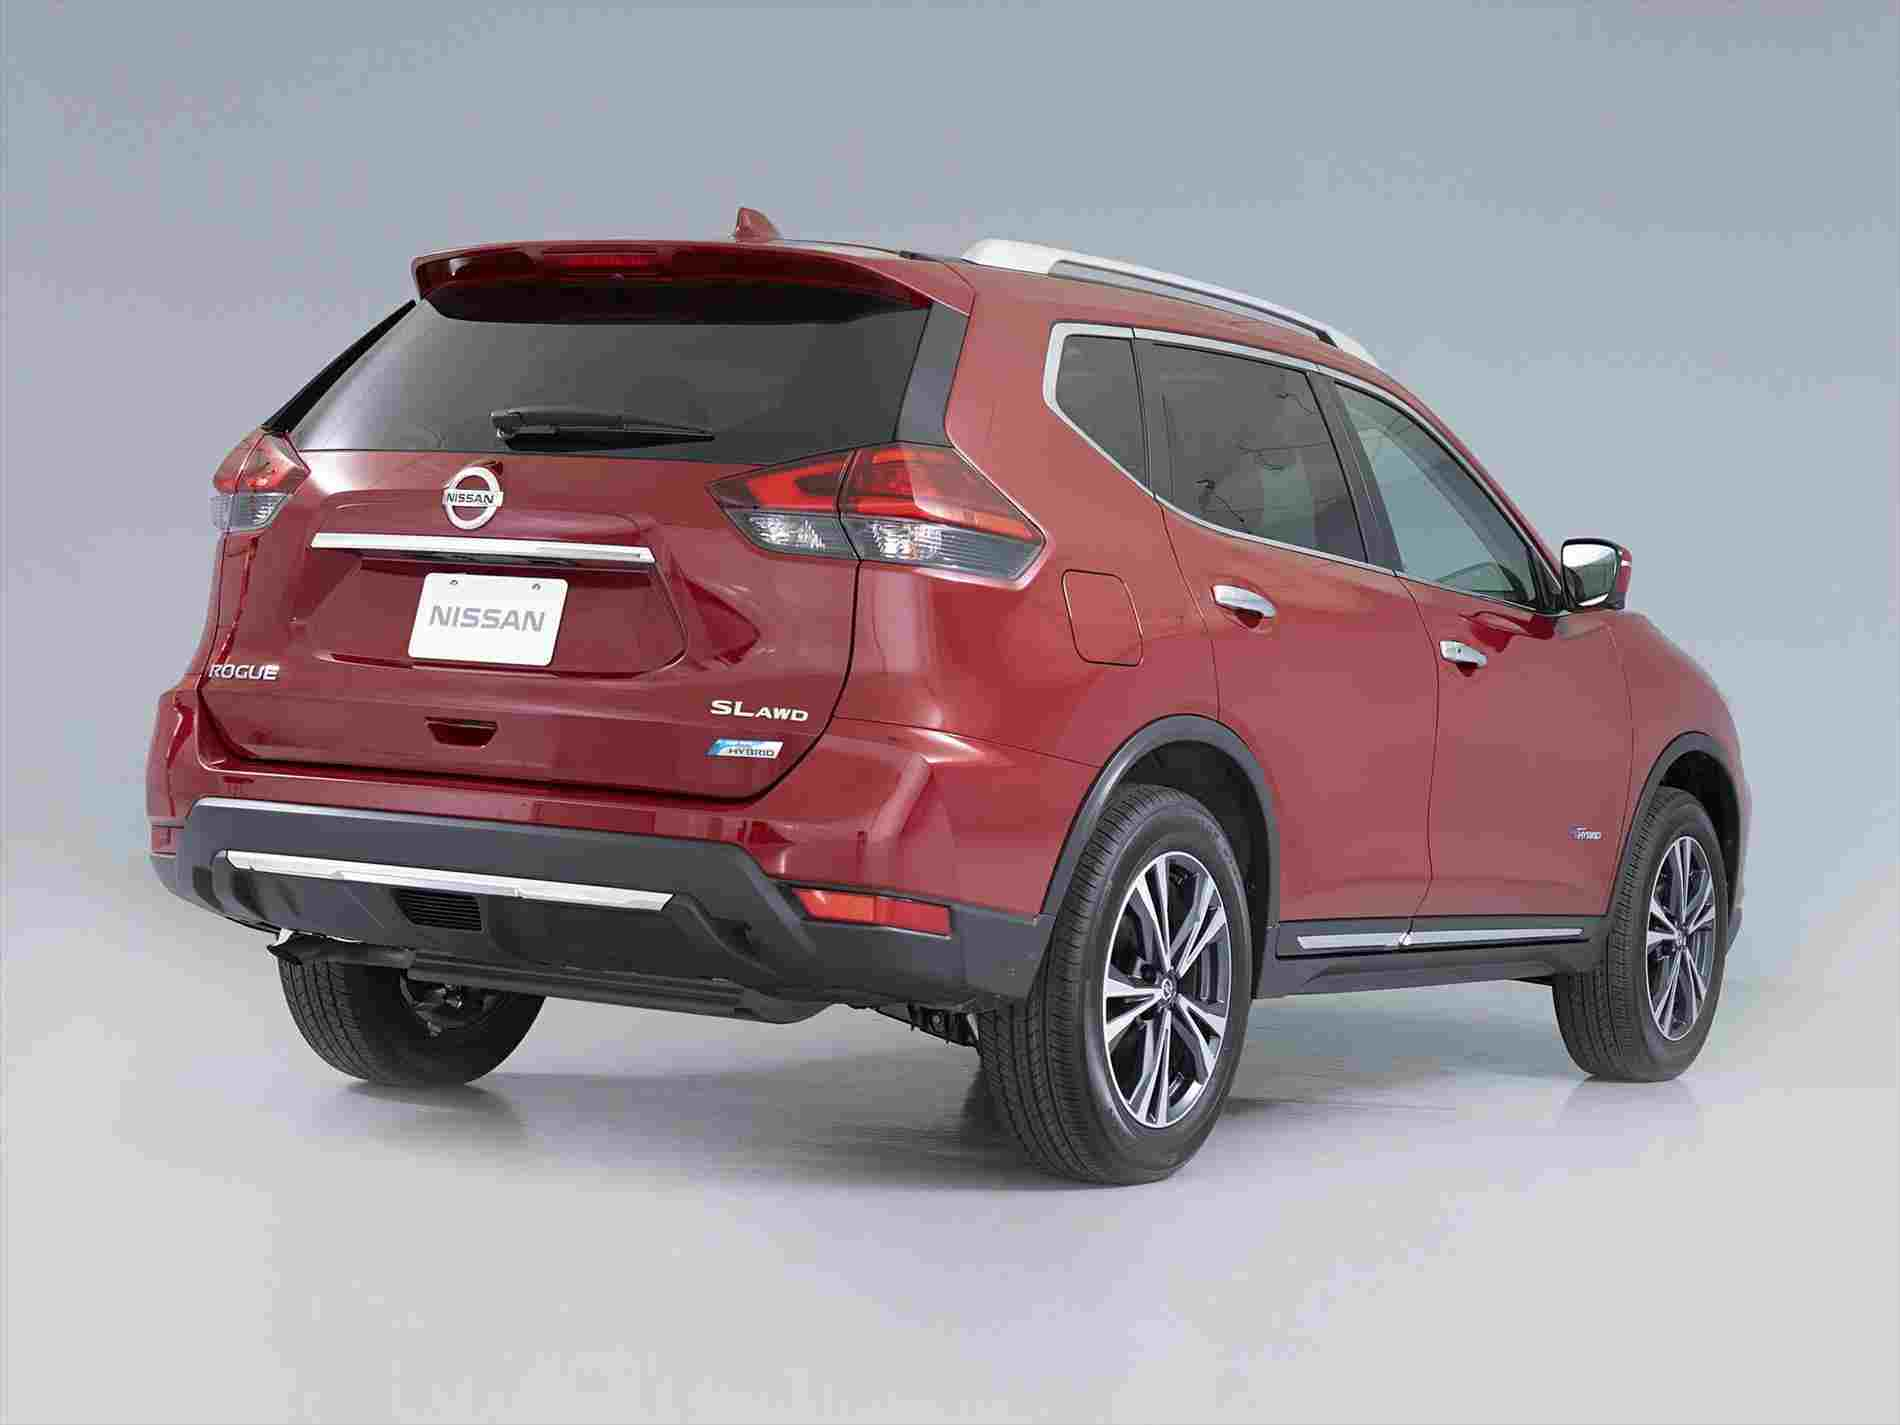 2018 nissan rogue dealer invoice | ThaCraft